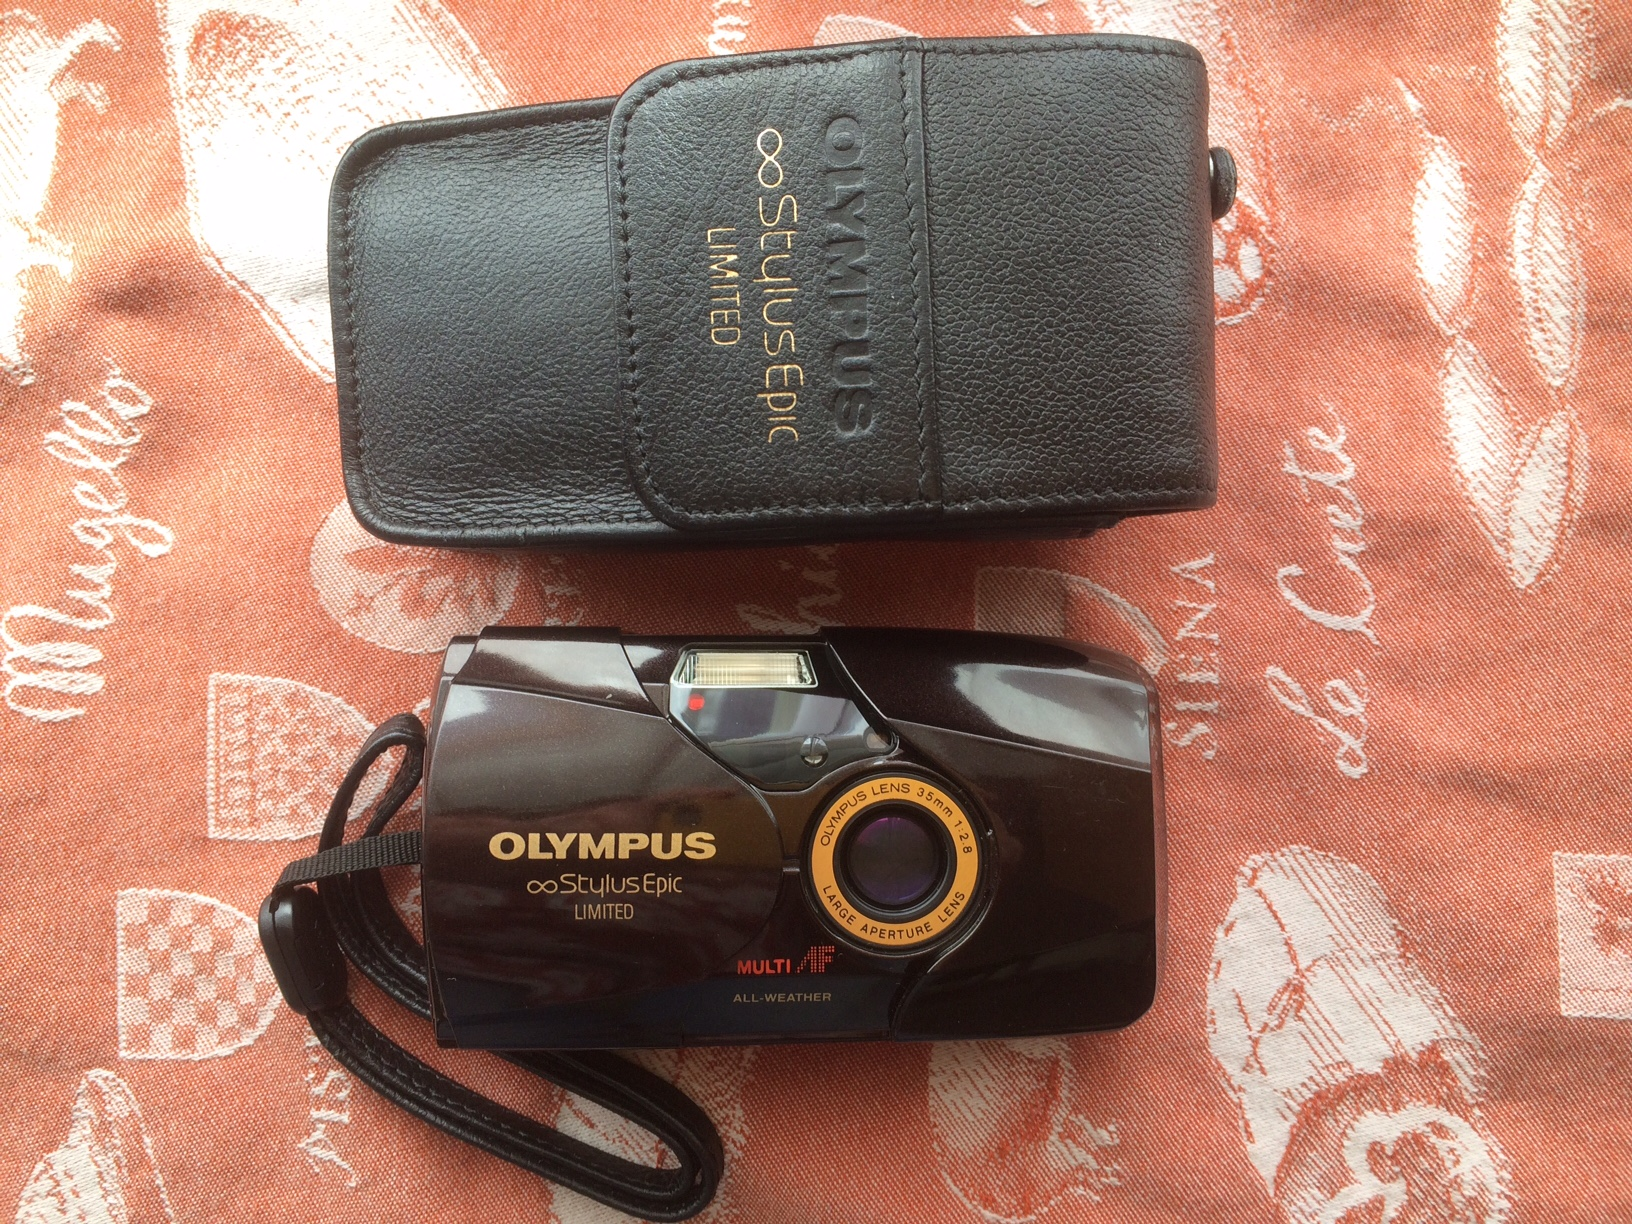 1f3c1a5cd0e This is the classic Olympus Stylus Epic (MJU-II) in the desireable Limited  edition with a leather case and Panorama setting. It is a quality point and  shoot ...